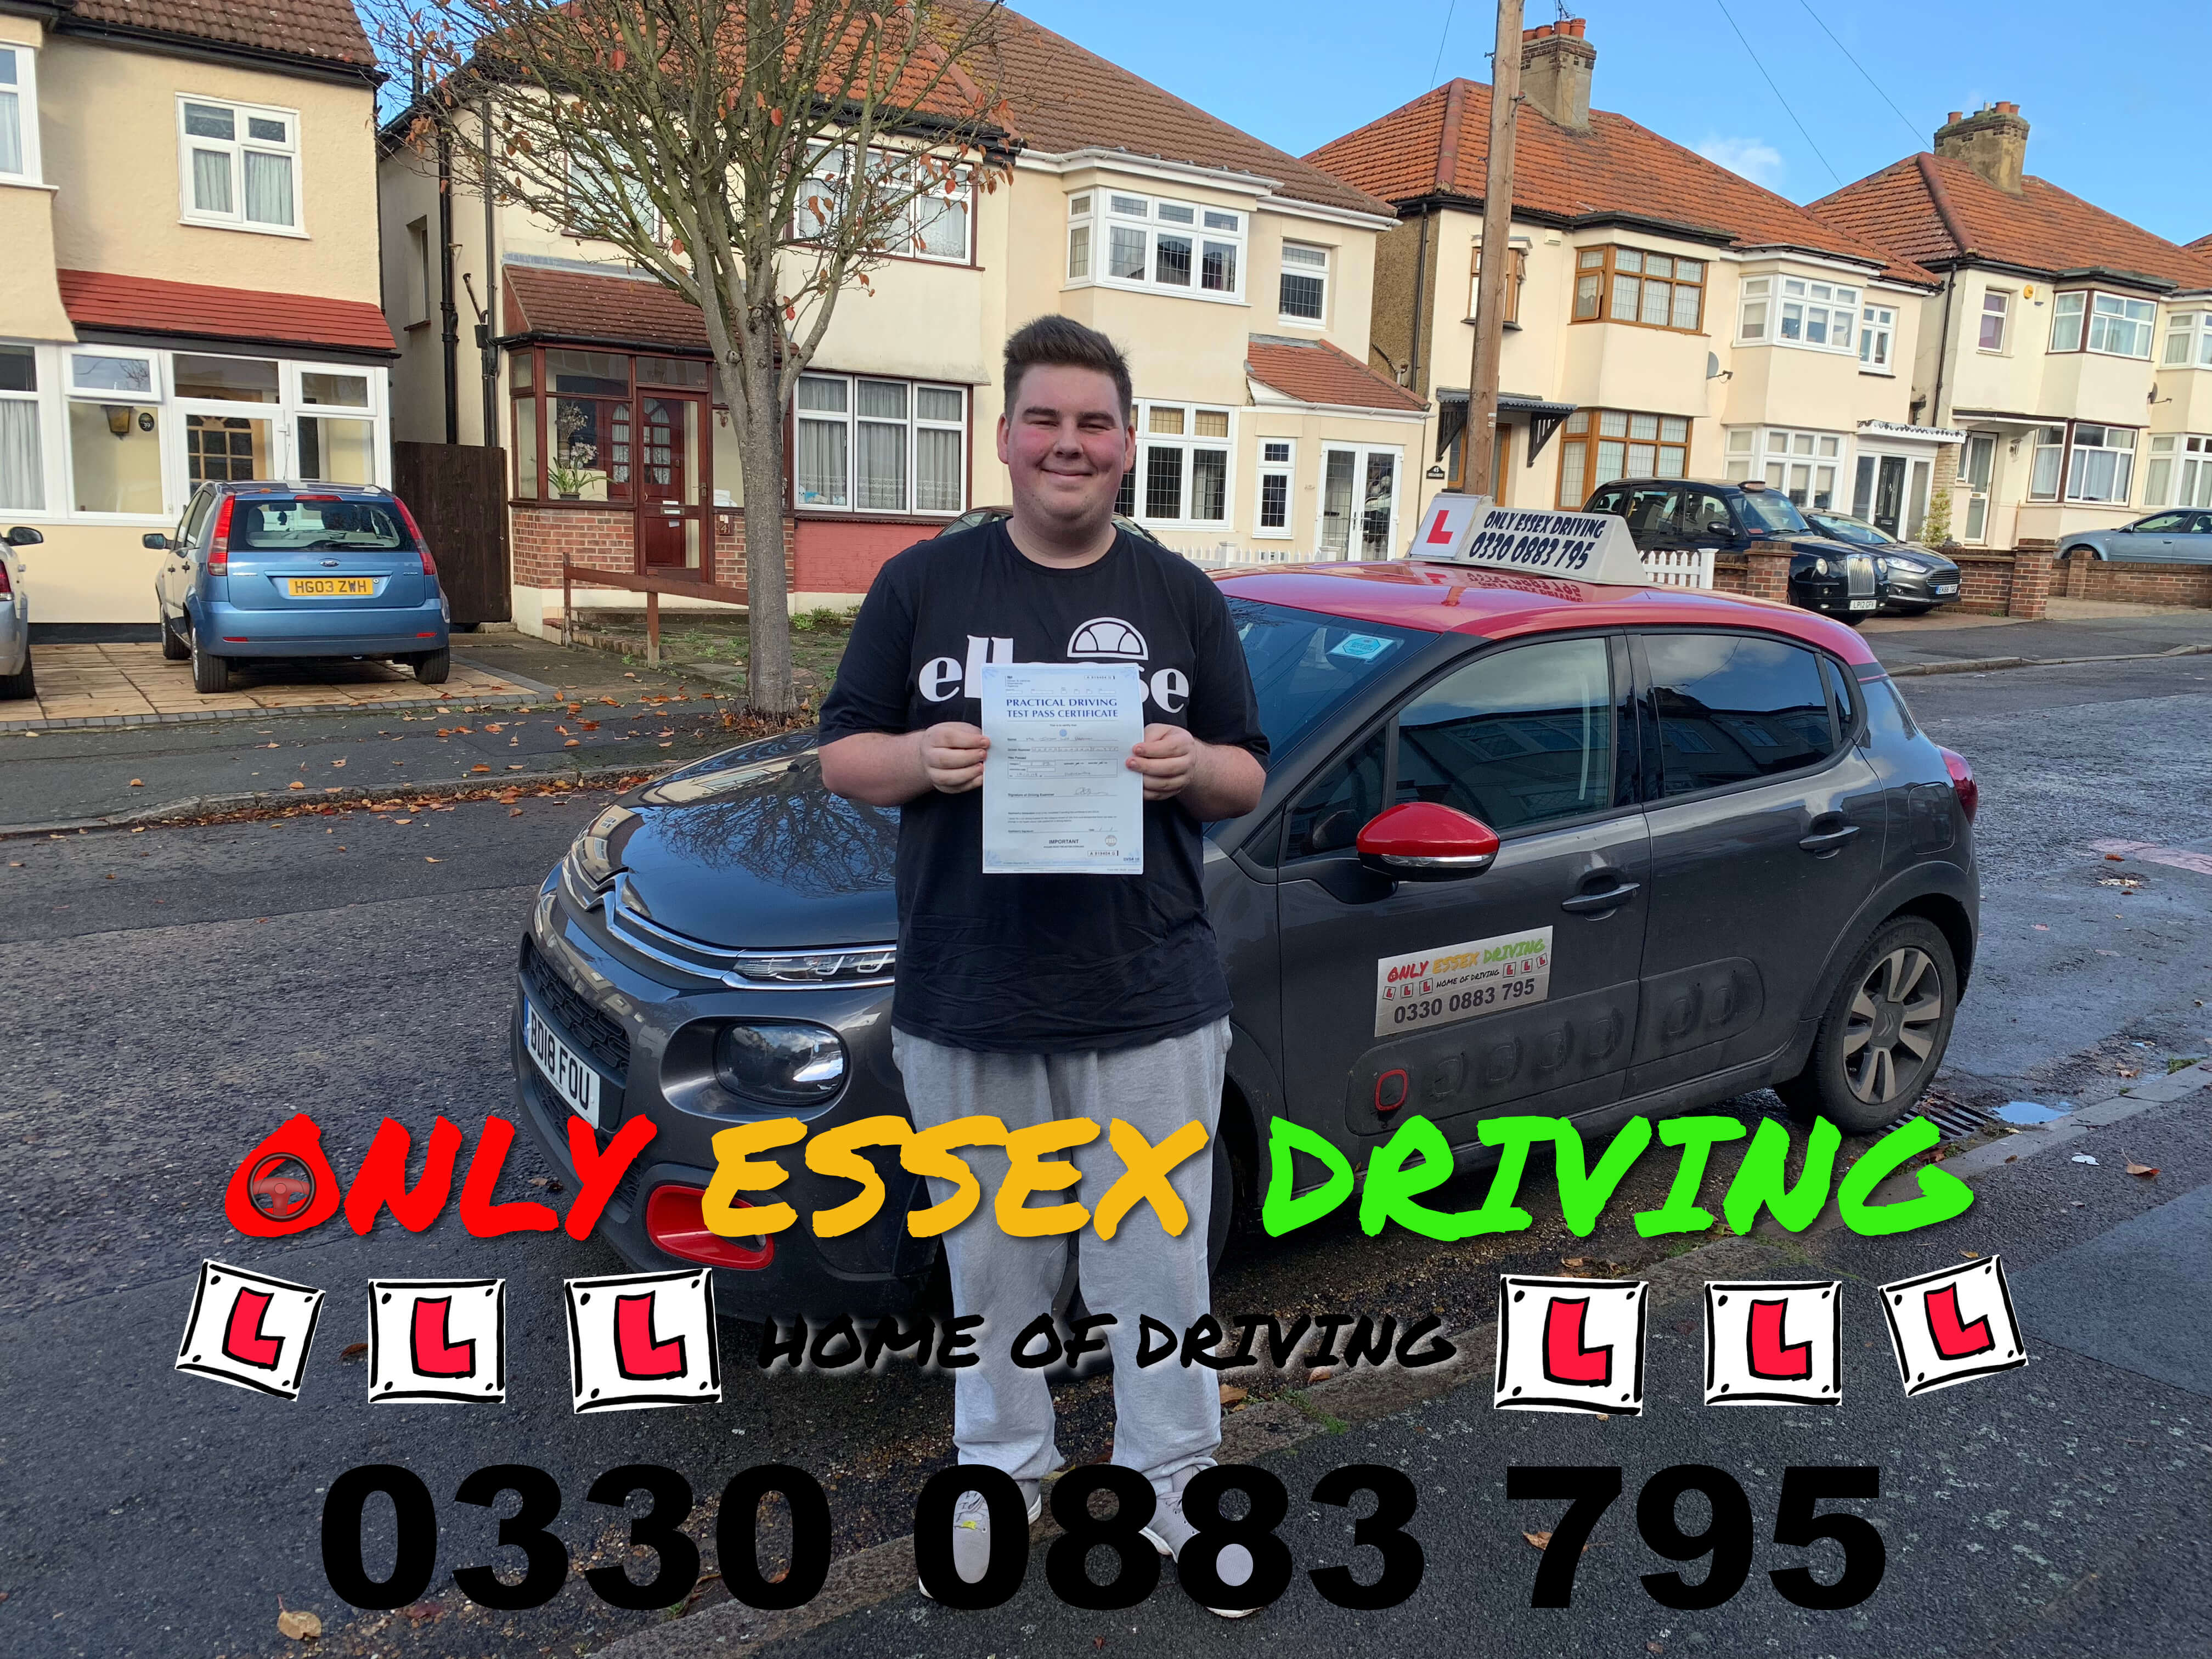 Well done to Jordan, who passed his driving test at Hornchurch test centre, Elm Park, Essex driving